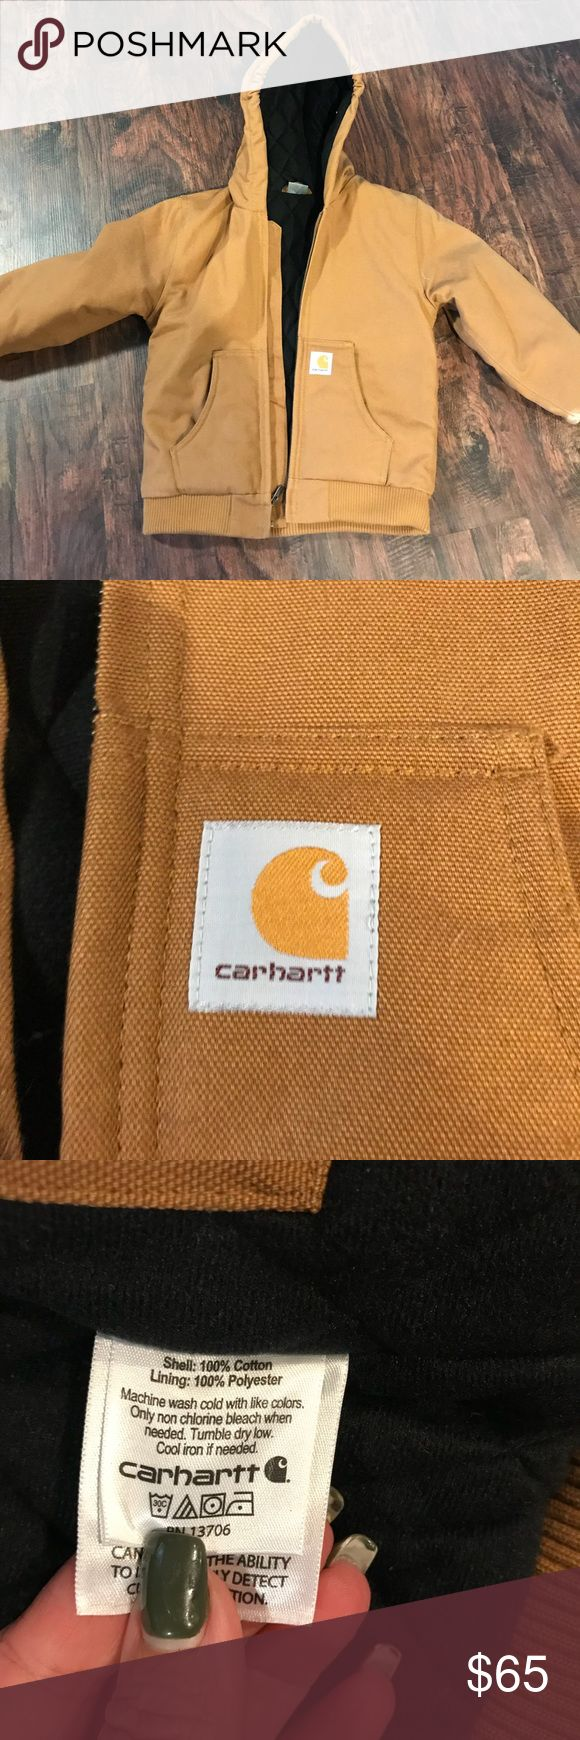 Carhartt boys work active quilted jacket New without tags, boys carhartt quilted winter jacket. Never worn. Size small (7-8) Carhartt Jackets & Coats